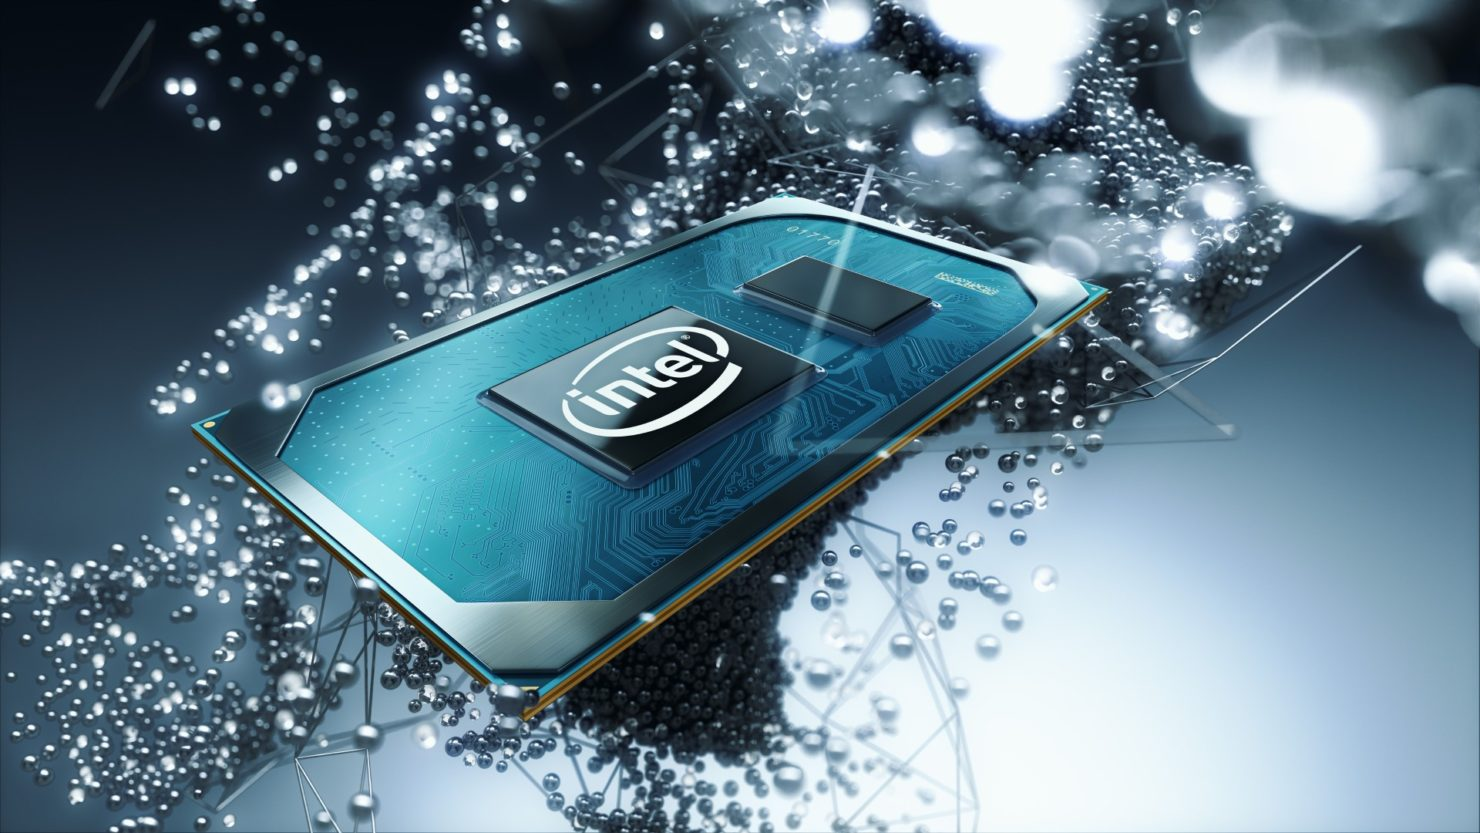 intel's-10nm-tiger-lake-h-high-performance-laptop-cpu-specifications-leaked,-flagship-core-i9-11980hk-with-8-cores-at-up-to-5-ghz